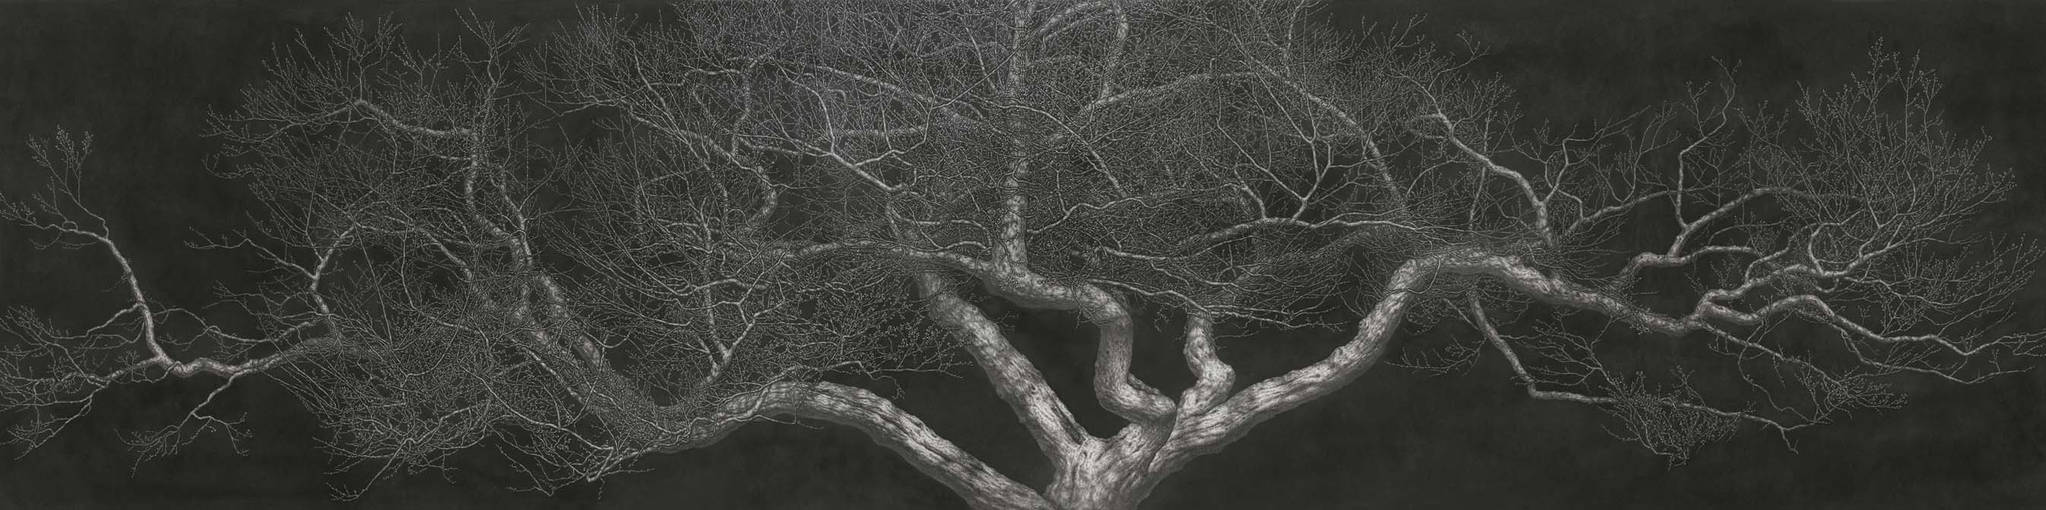 Moonscape 달빛(2017), 227x910cm, Charcoal on Canvas